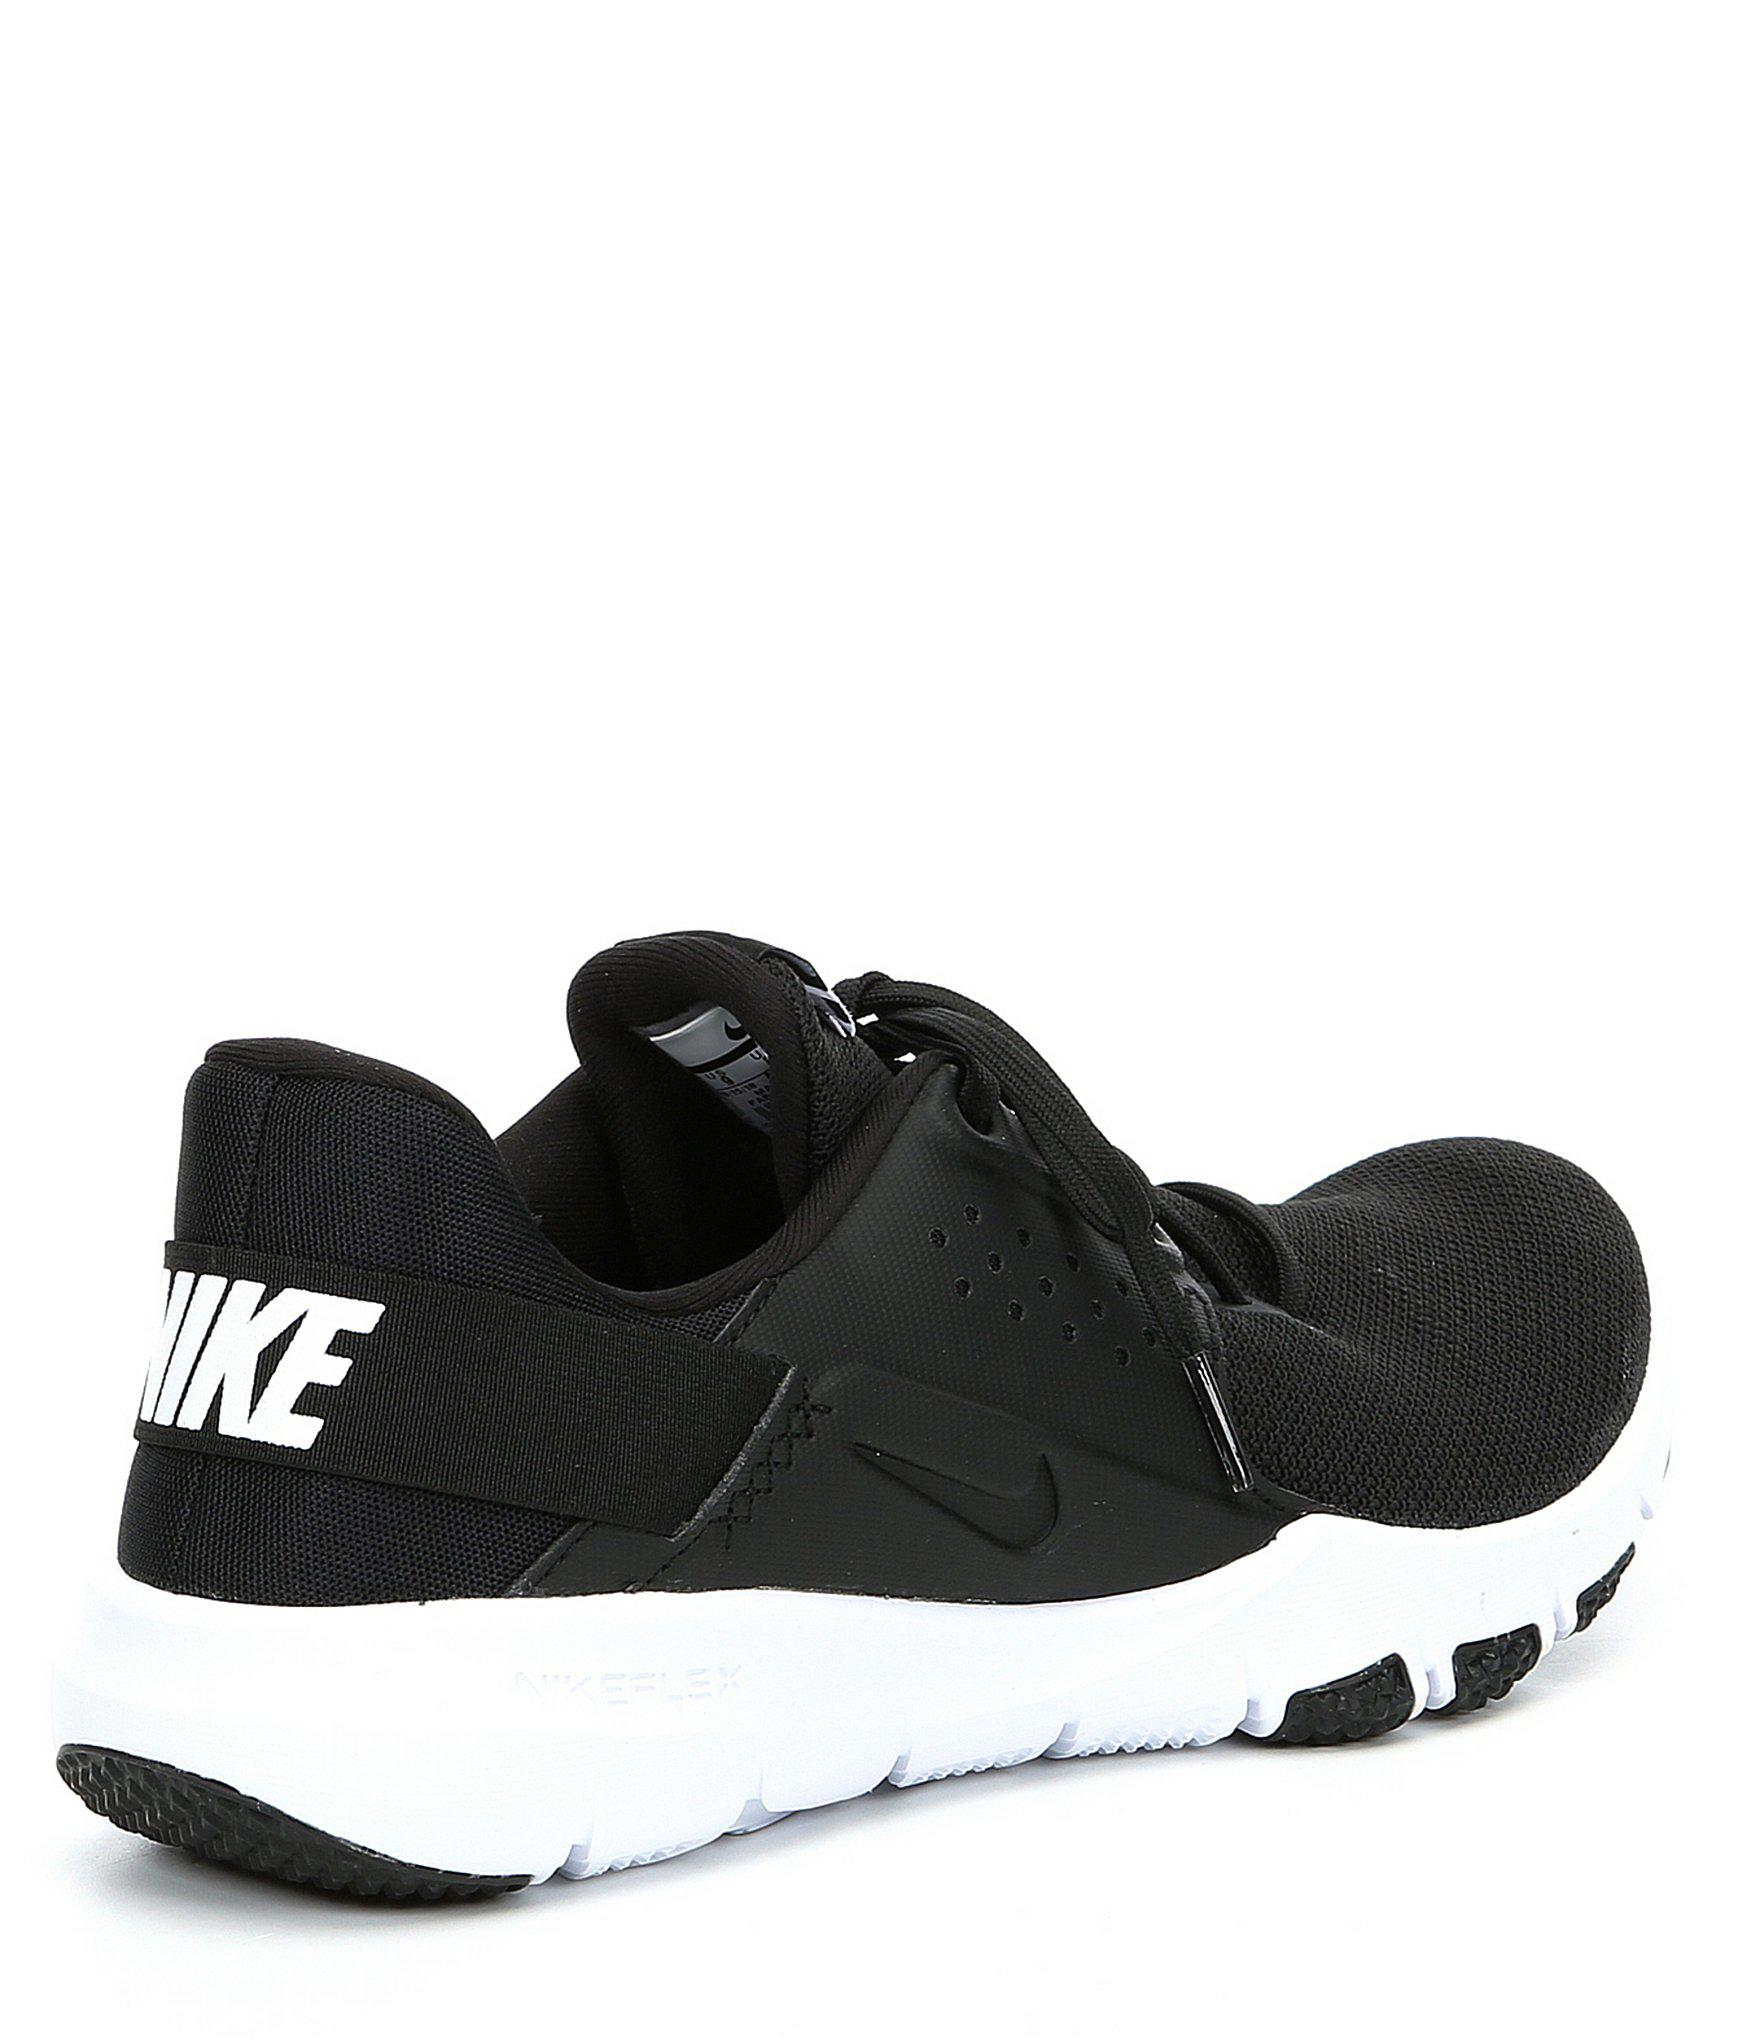 513d19147f75 Lyst - Nike Men s Flex Control Tr 3 Training Shoe in Black for Men